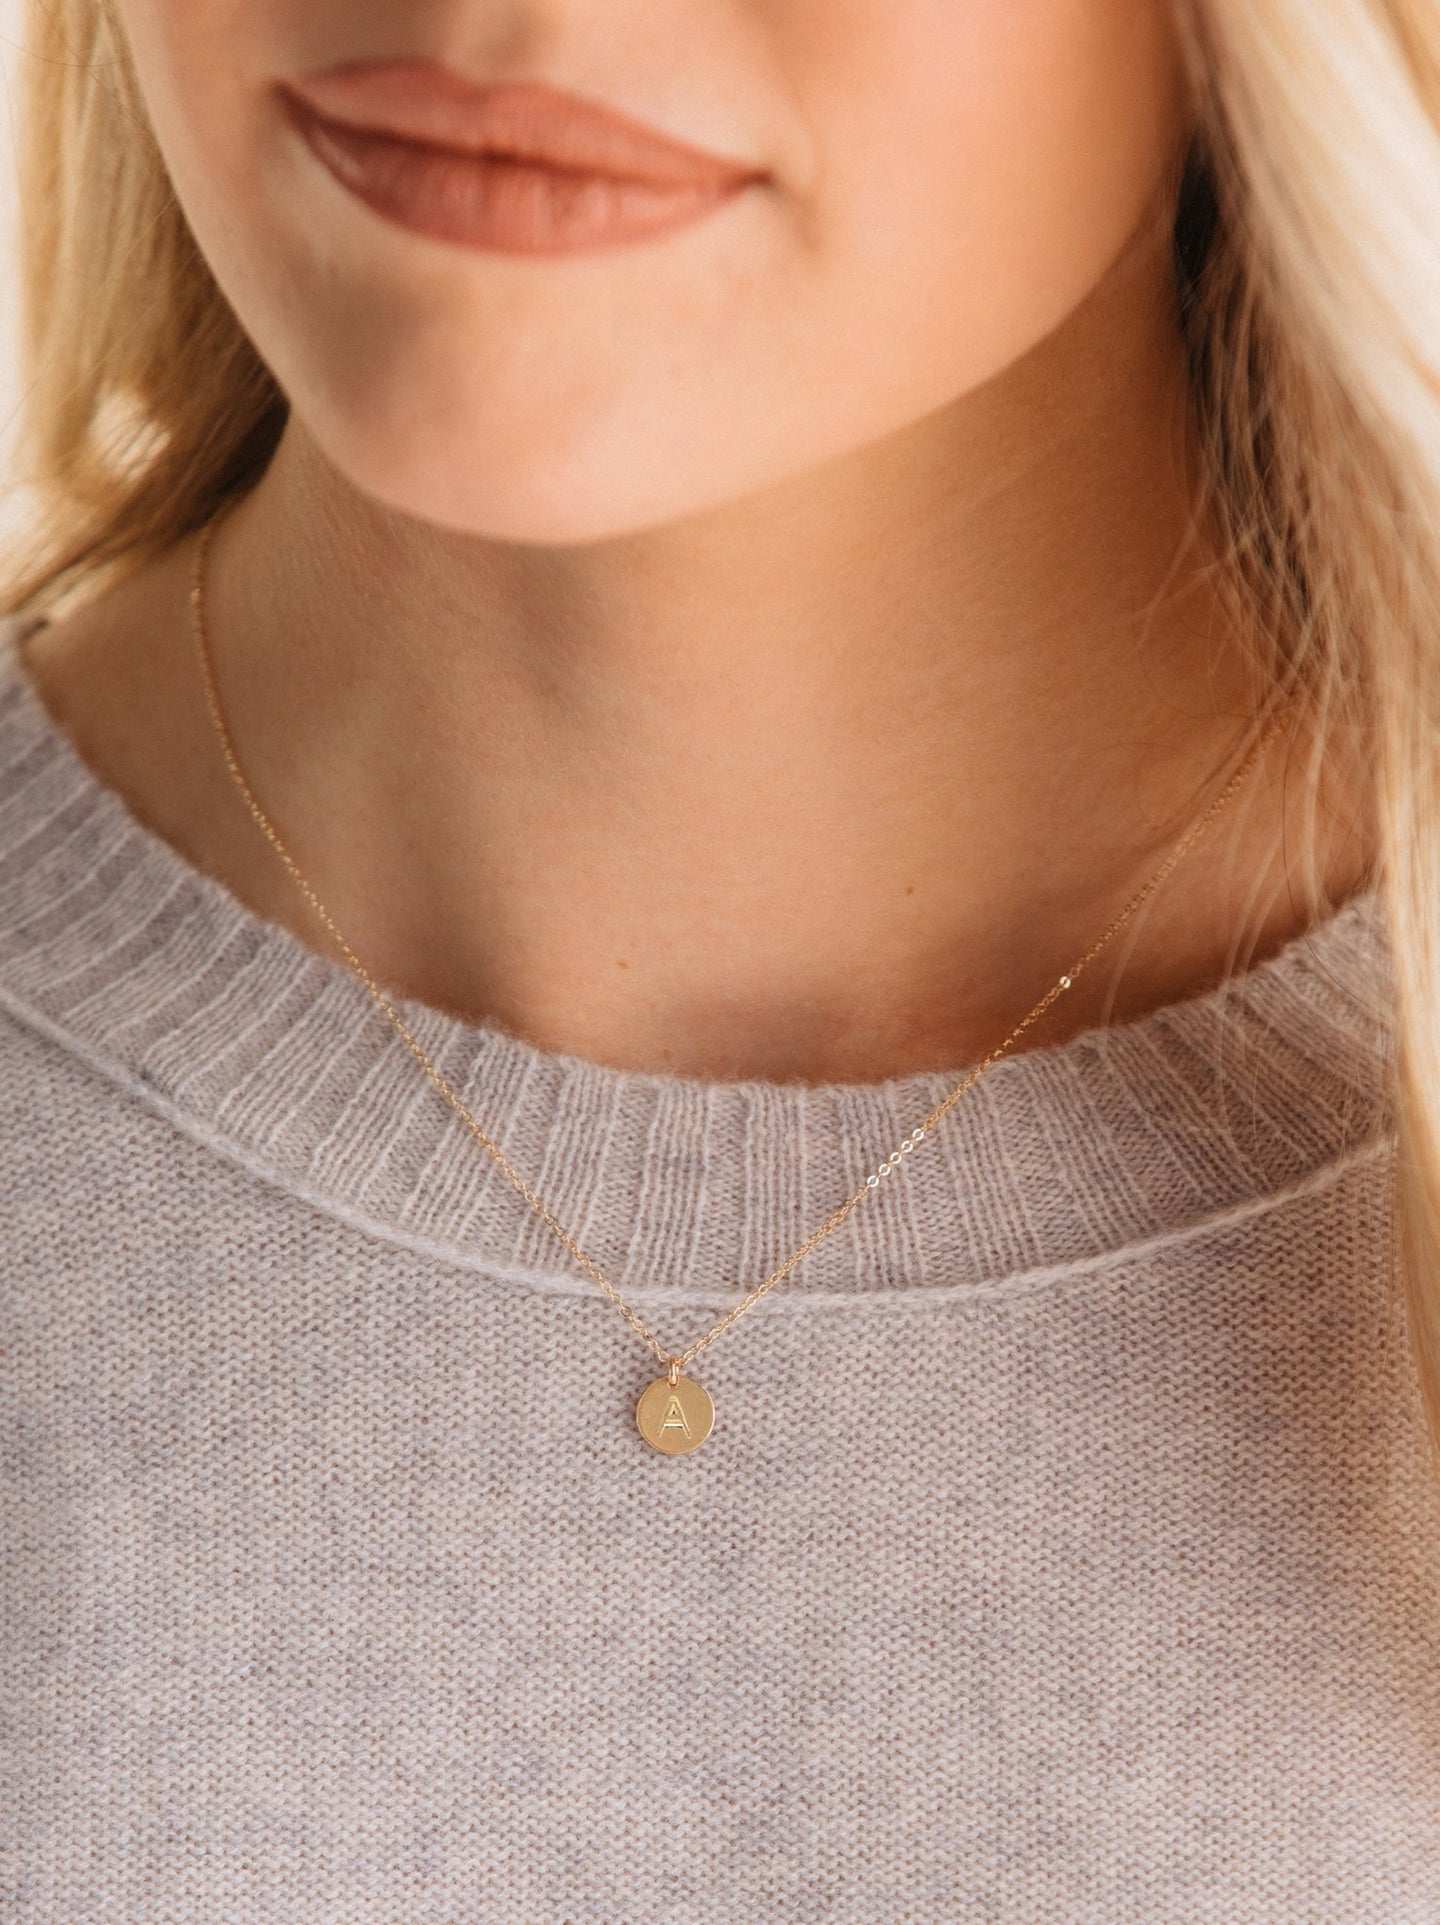 ABLE Mini Initial Necklace - Gold